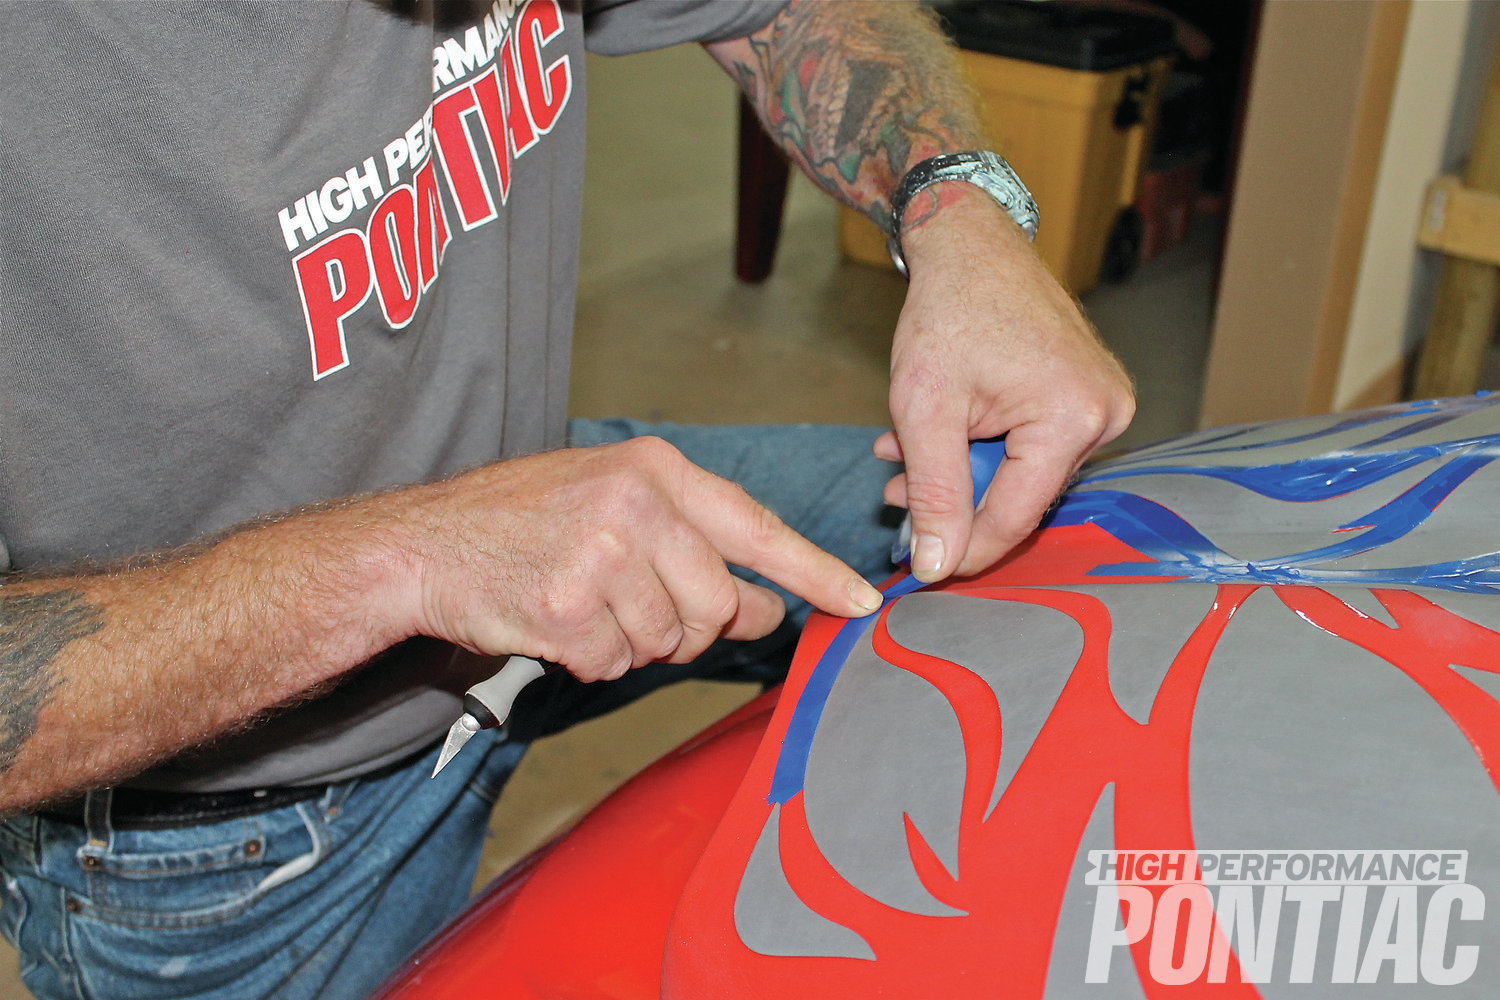 4 Using automotive vinyl, he masked off the area where GlowMax will be applied.